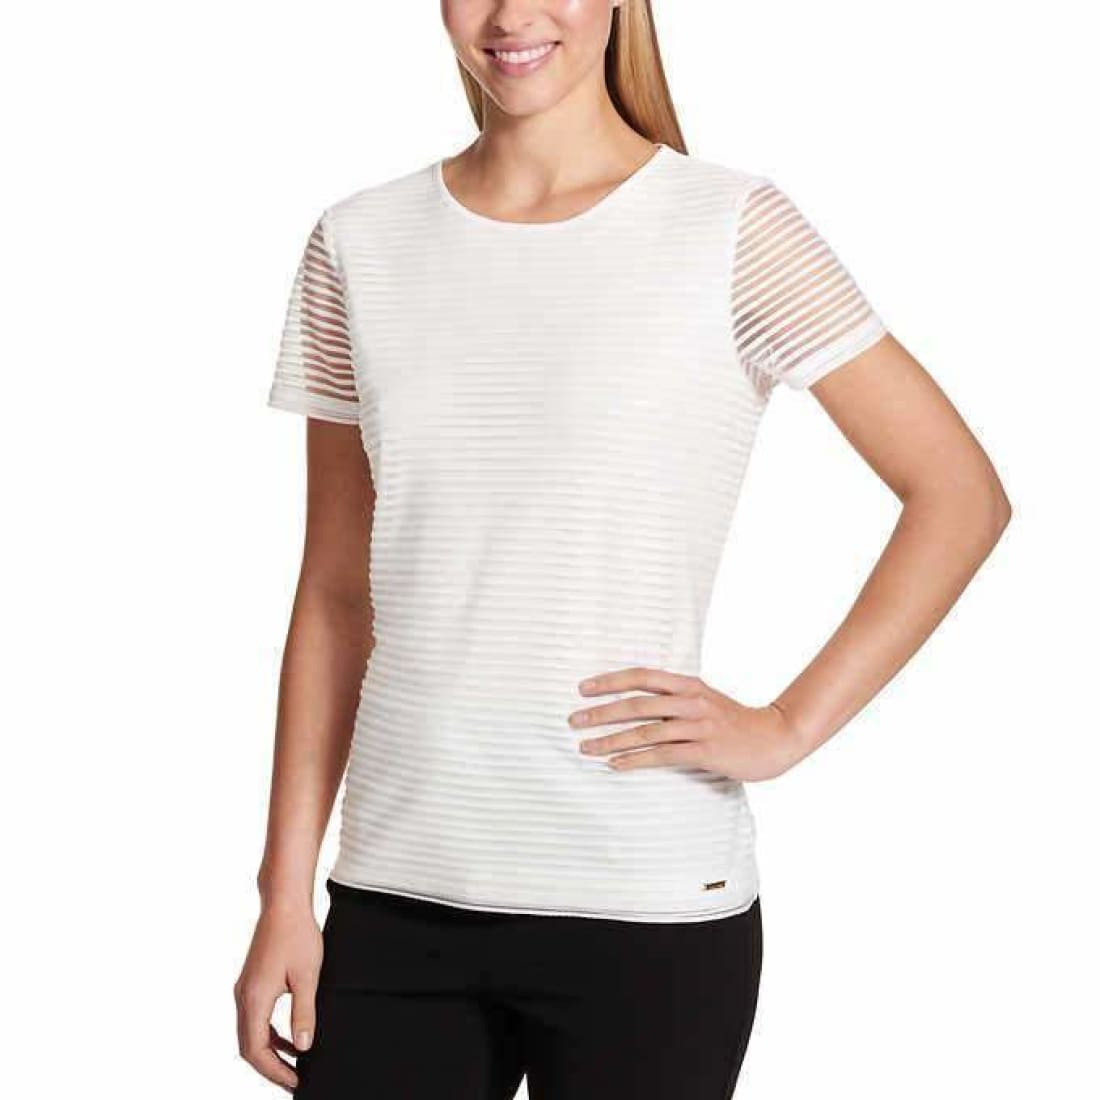 Calvin Klein Ladies Stretch Textured Tee Xxl / White Tops & Blouses